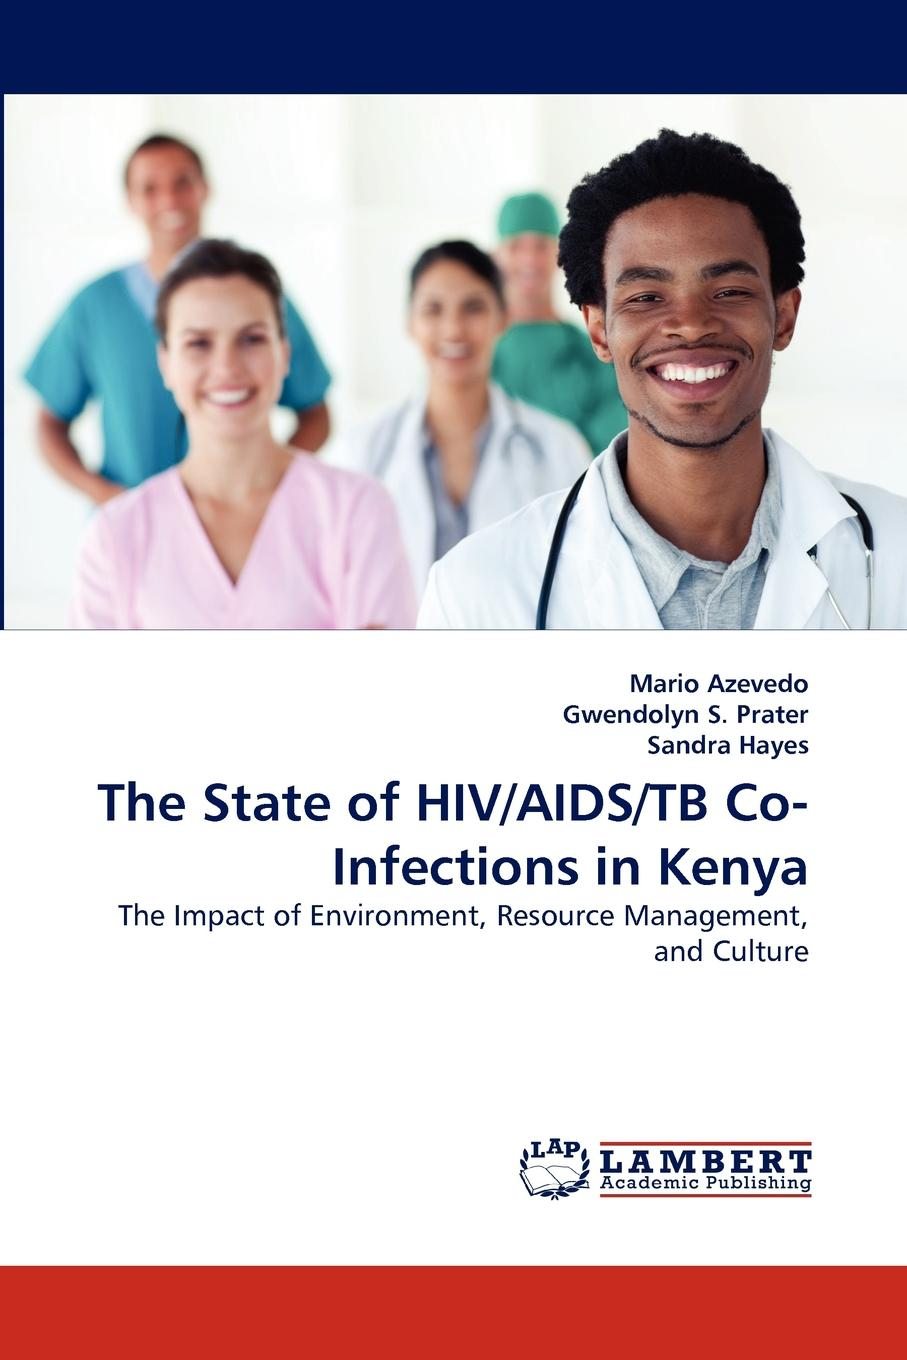 Mario Azevedo, Gwendolyn S. Prater, Sandra Hayes The State of HIV/AIDS/TB Co-Infections in Kenya недорго, оригинальная цена